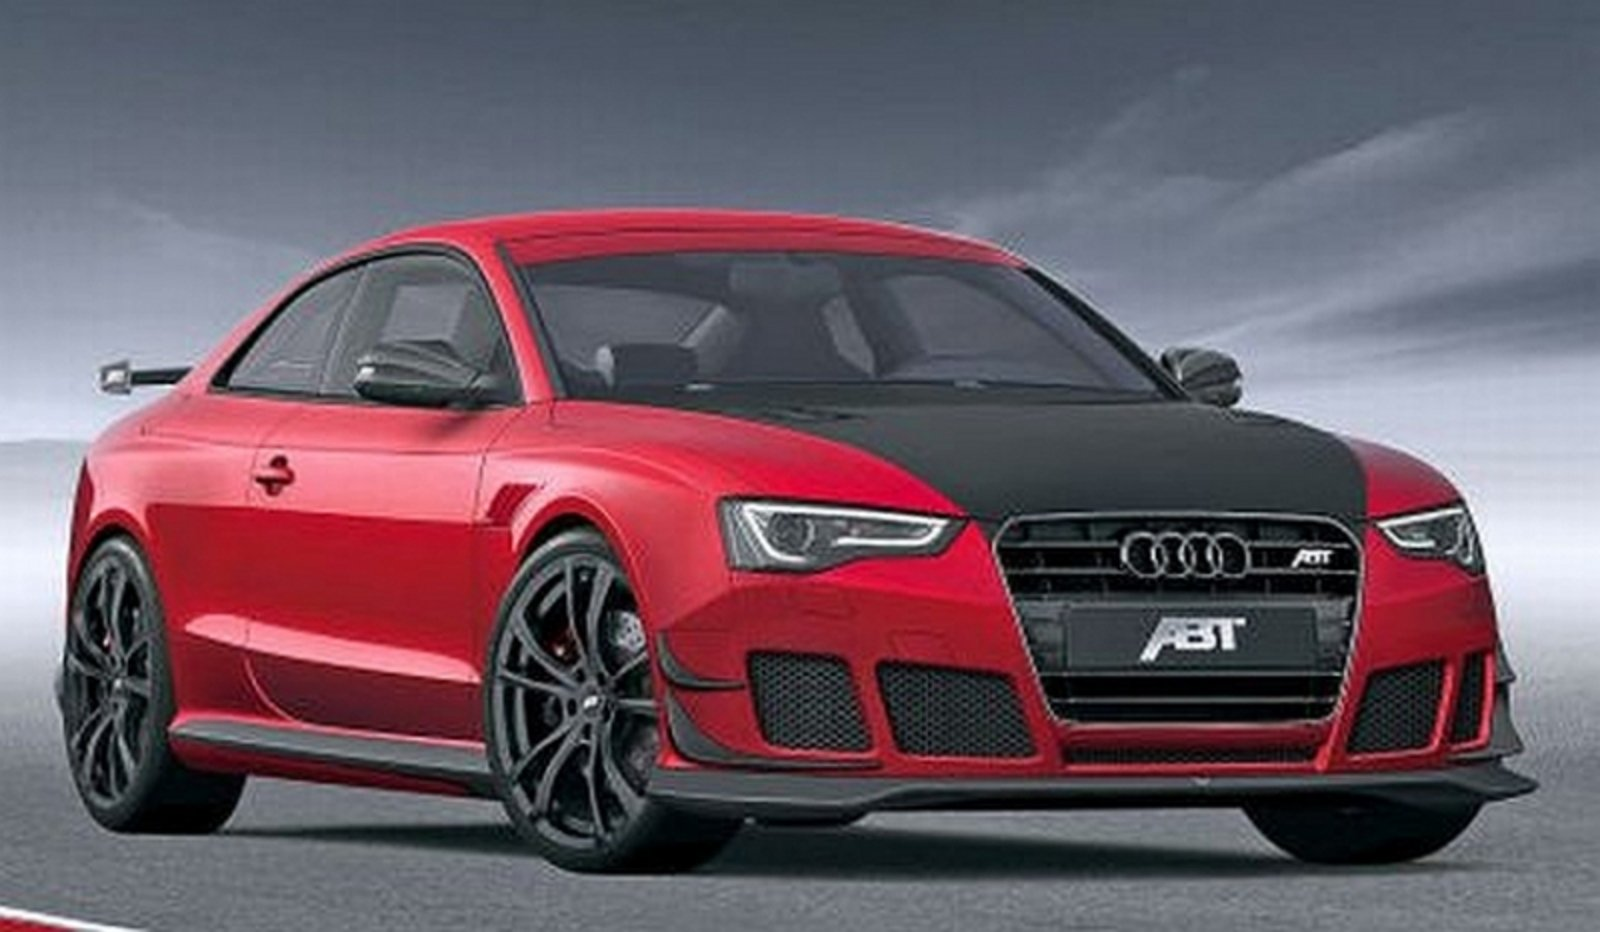 2013 audi rs5 r by abt sportsline review top speed. Black Bedroom Furniture Sets. Home Design Ideas